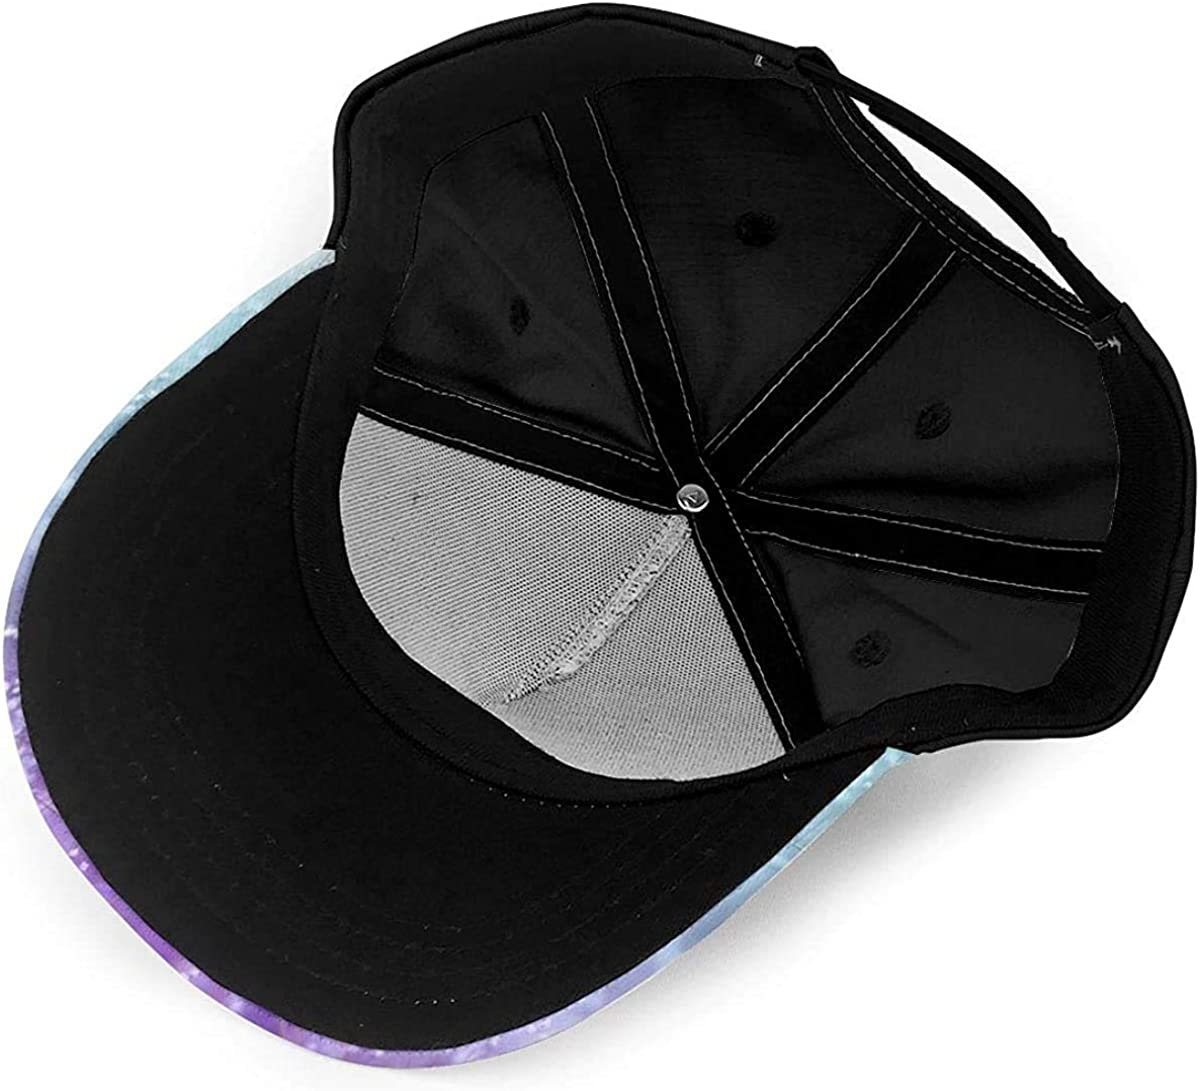 Wooden Dreamy Abstract Lavender Blue Lightweight Unisex Baseball Caps Adjustable Breathable Sun Hat for Sport Outdoor